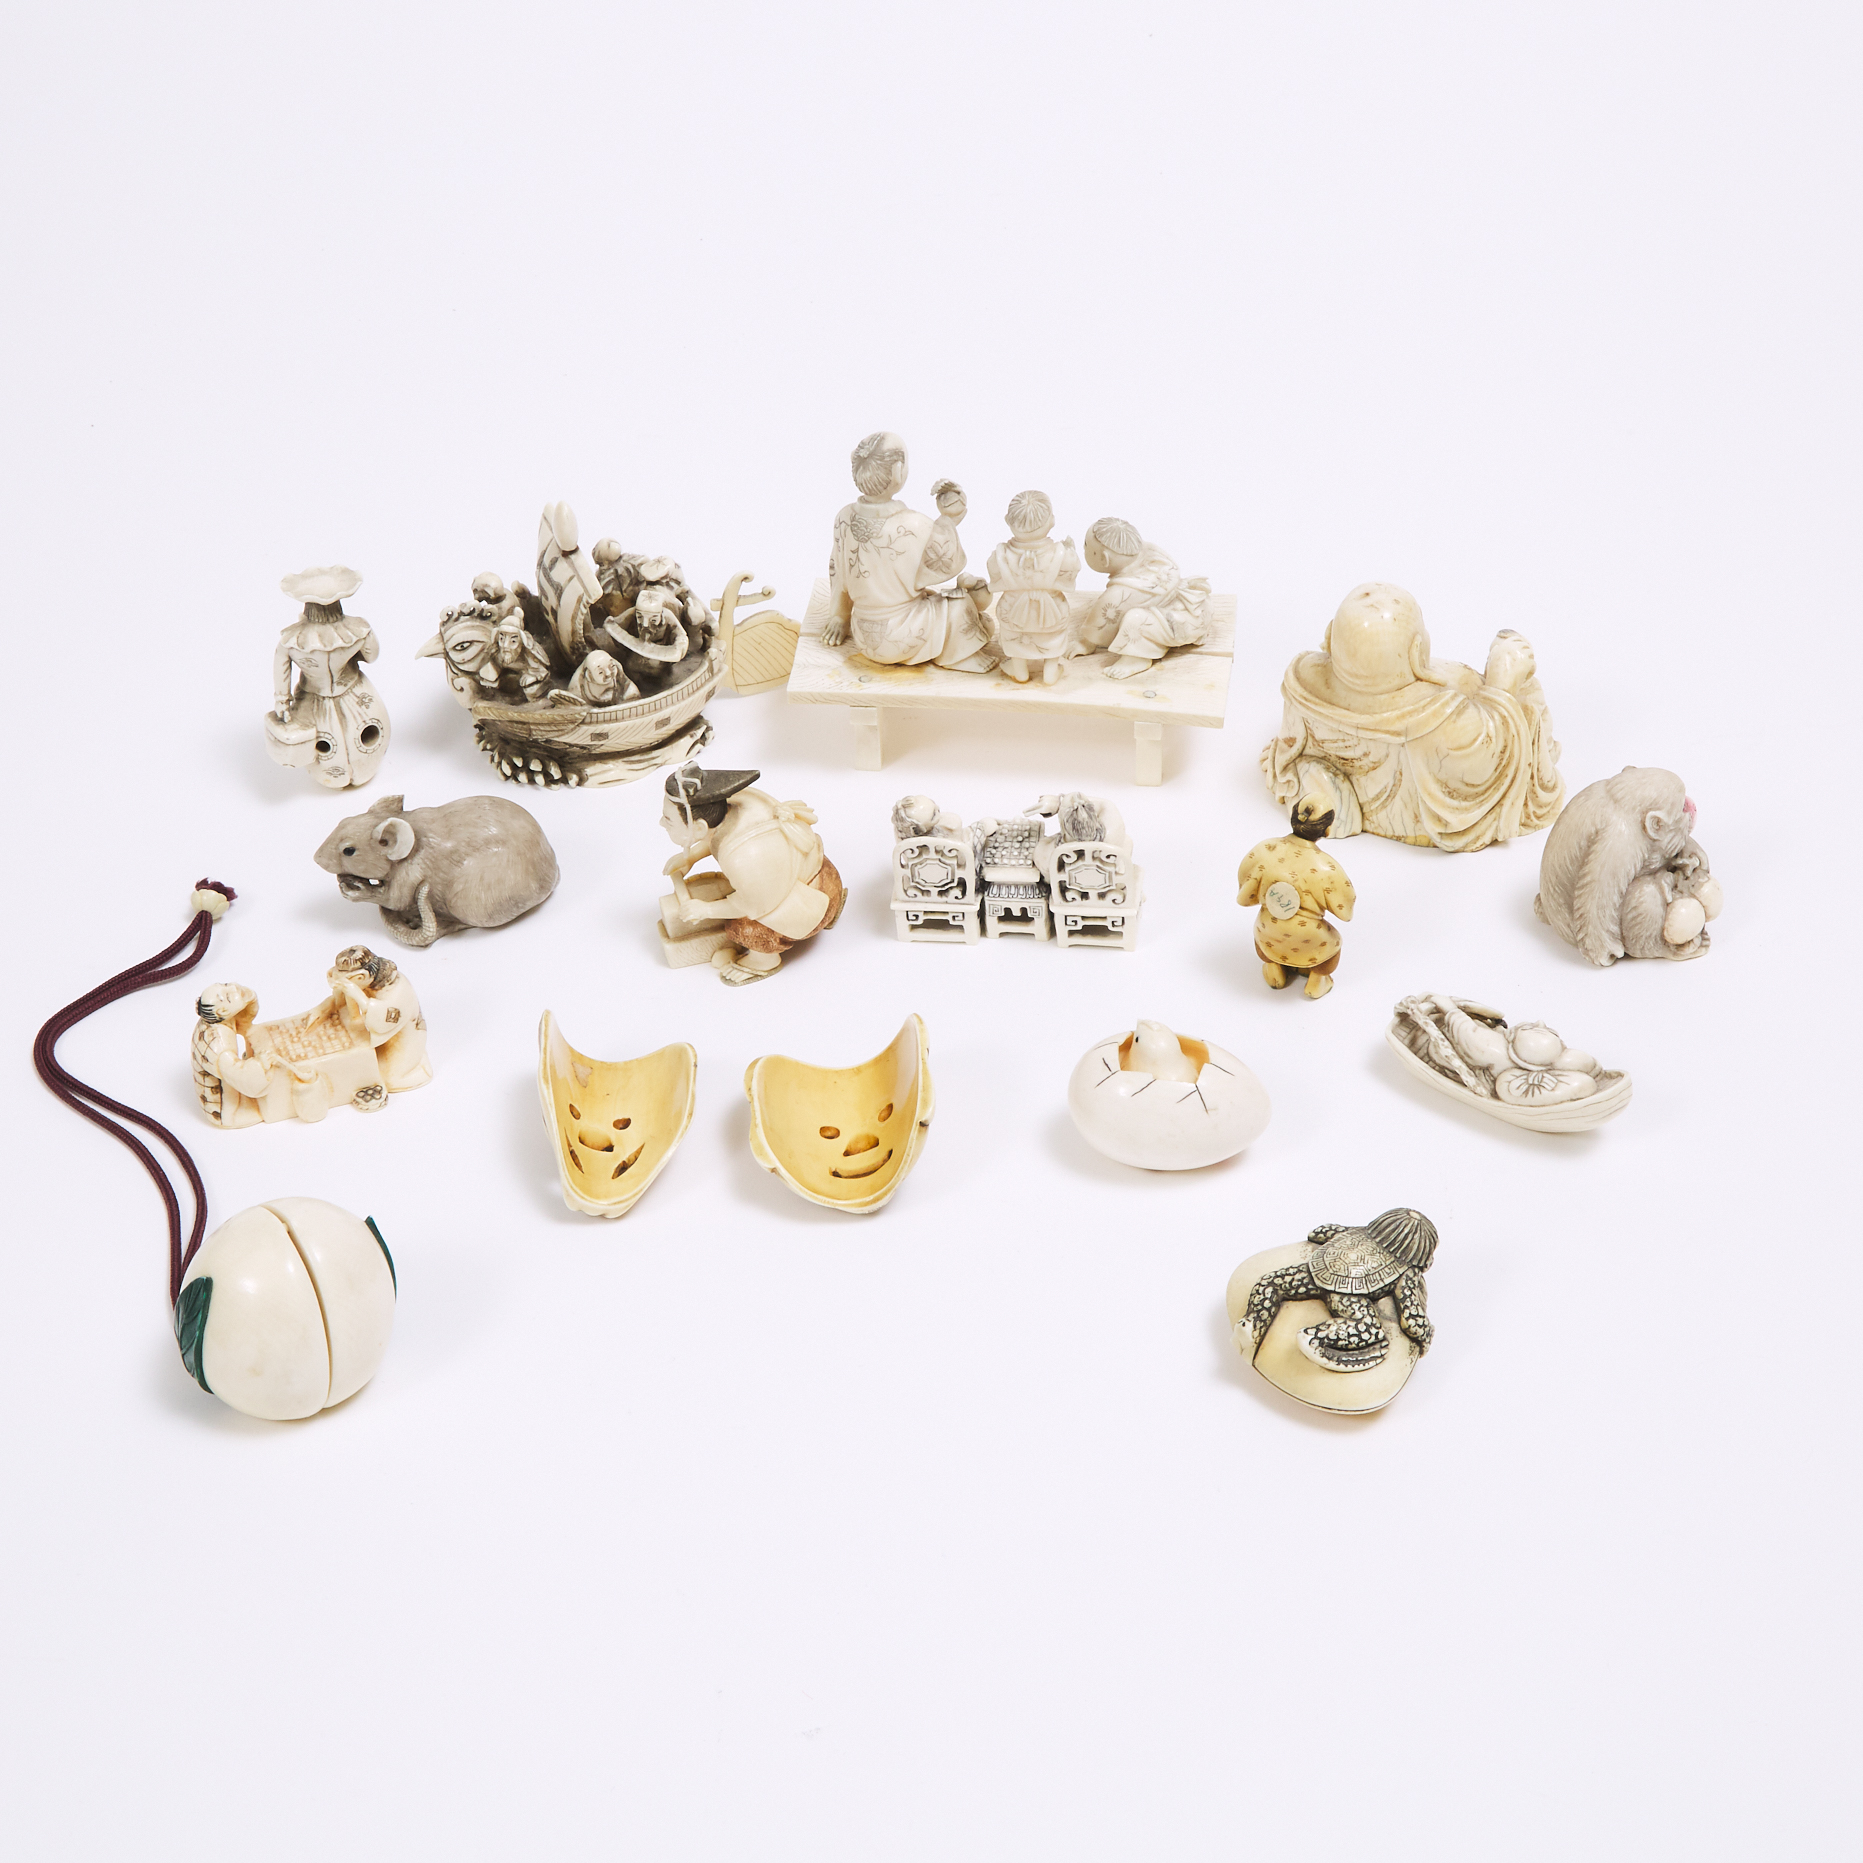 A Group of Sixteen Japanese Ivory and Bone Netsuke and Okimono, 19th/Early 20th Century